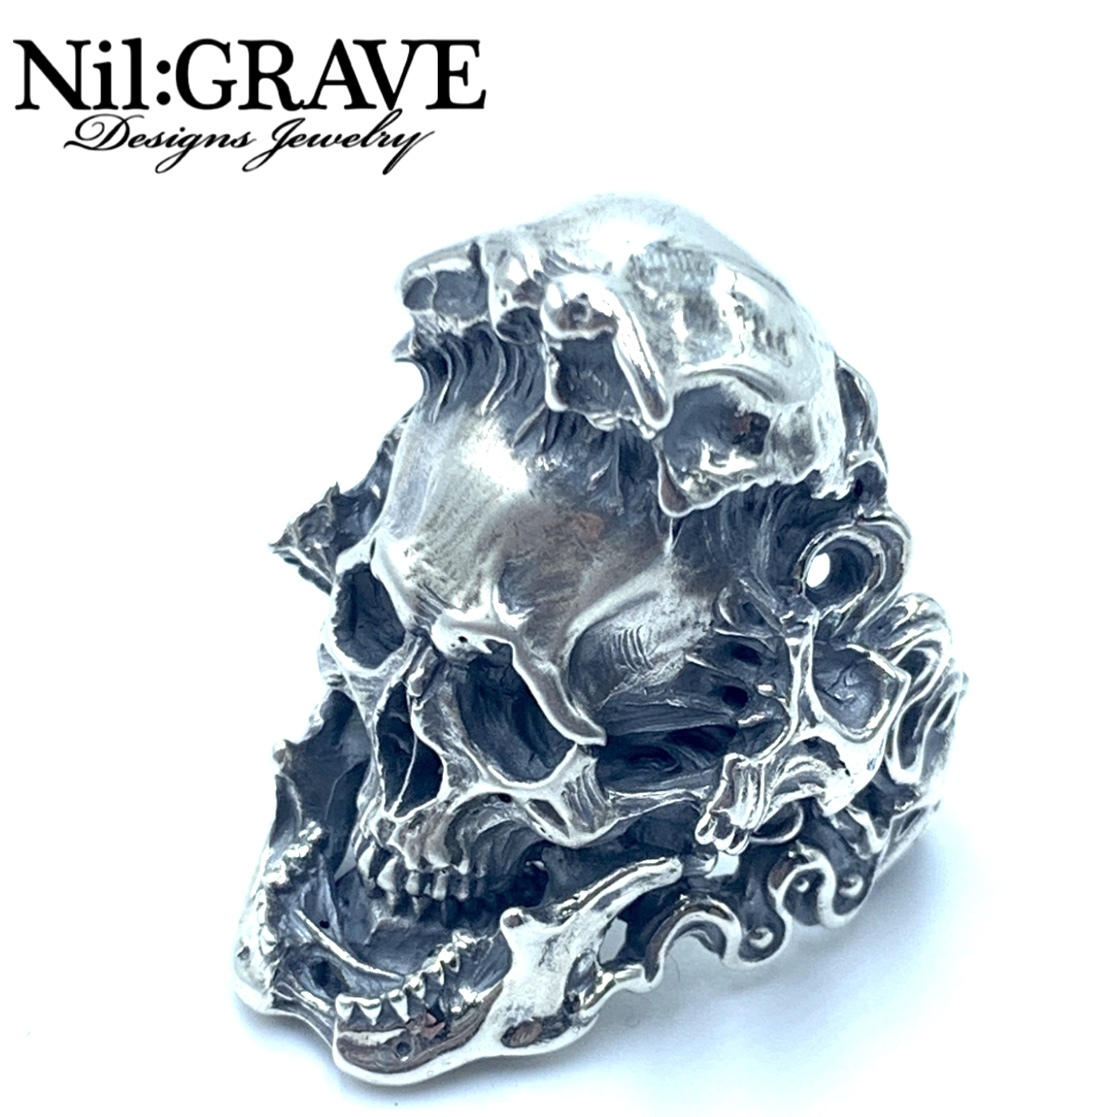 Nil:GRAVE Designs Jewelry/ニルグレイヴ デザインズジュエリースカパカル リング